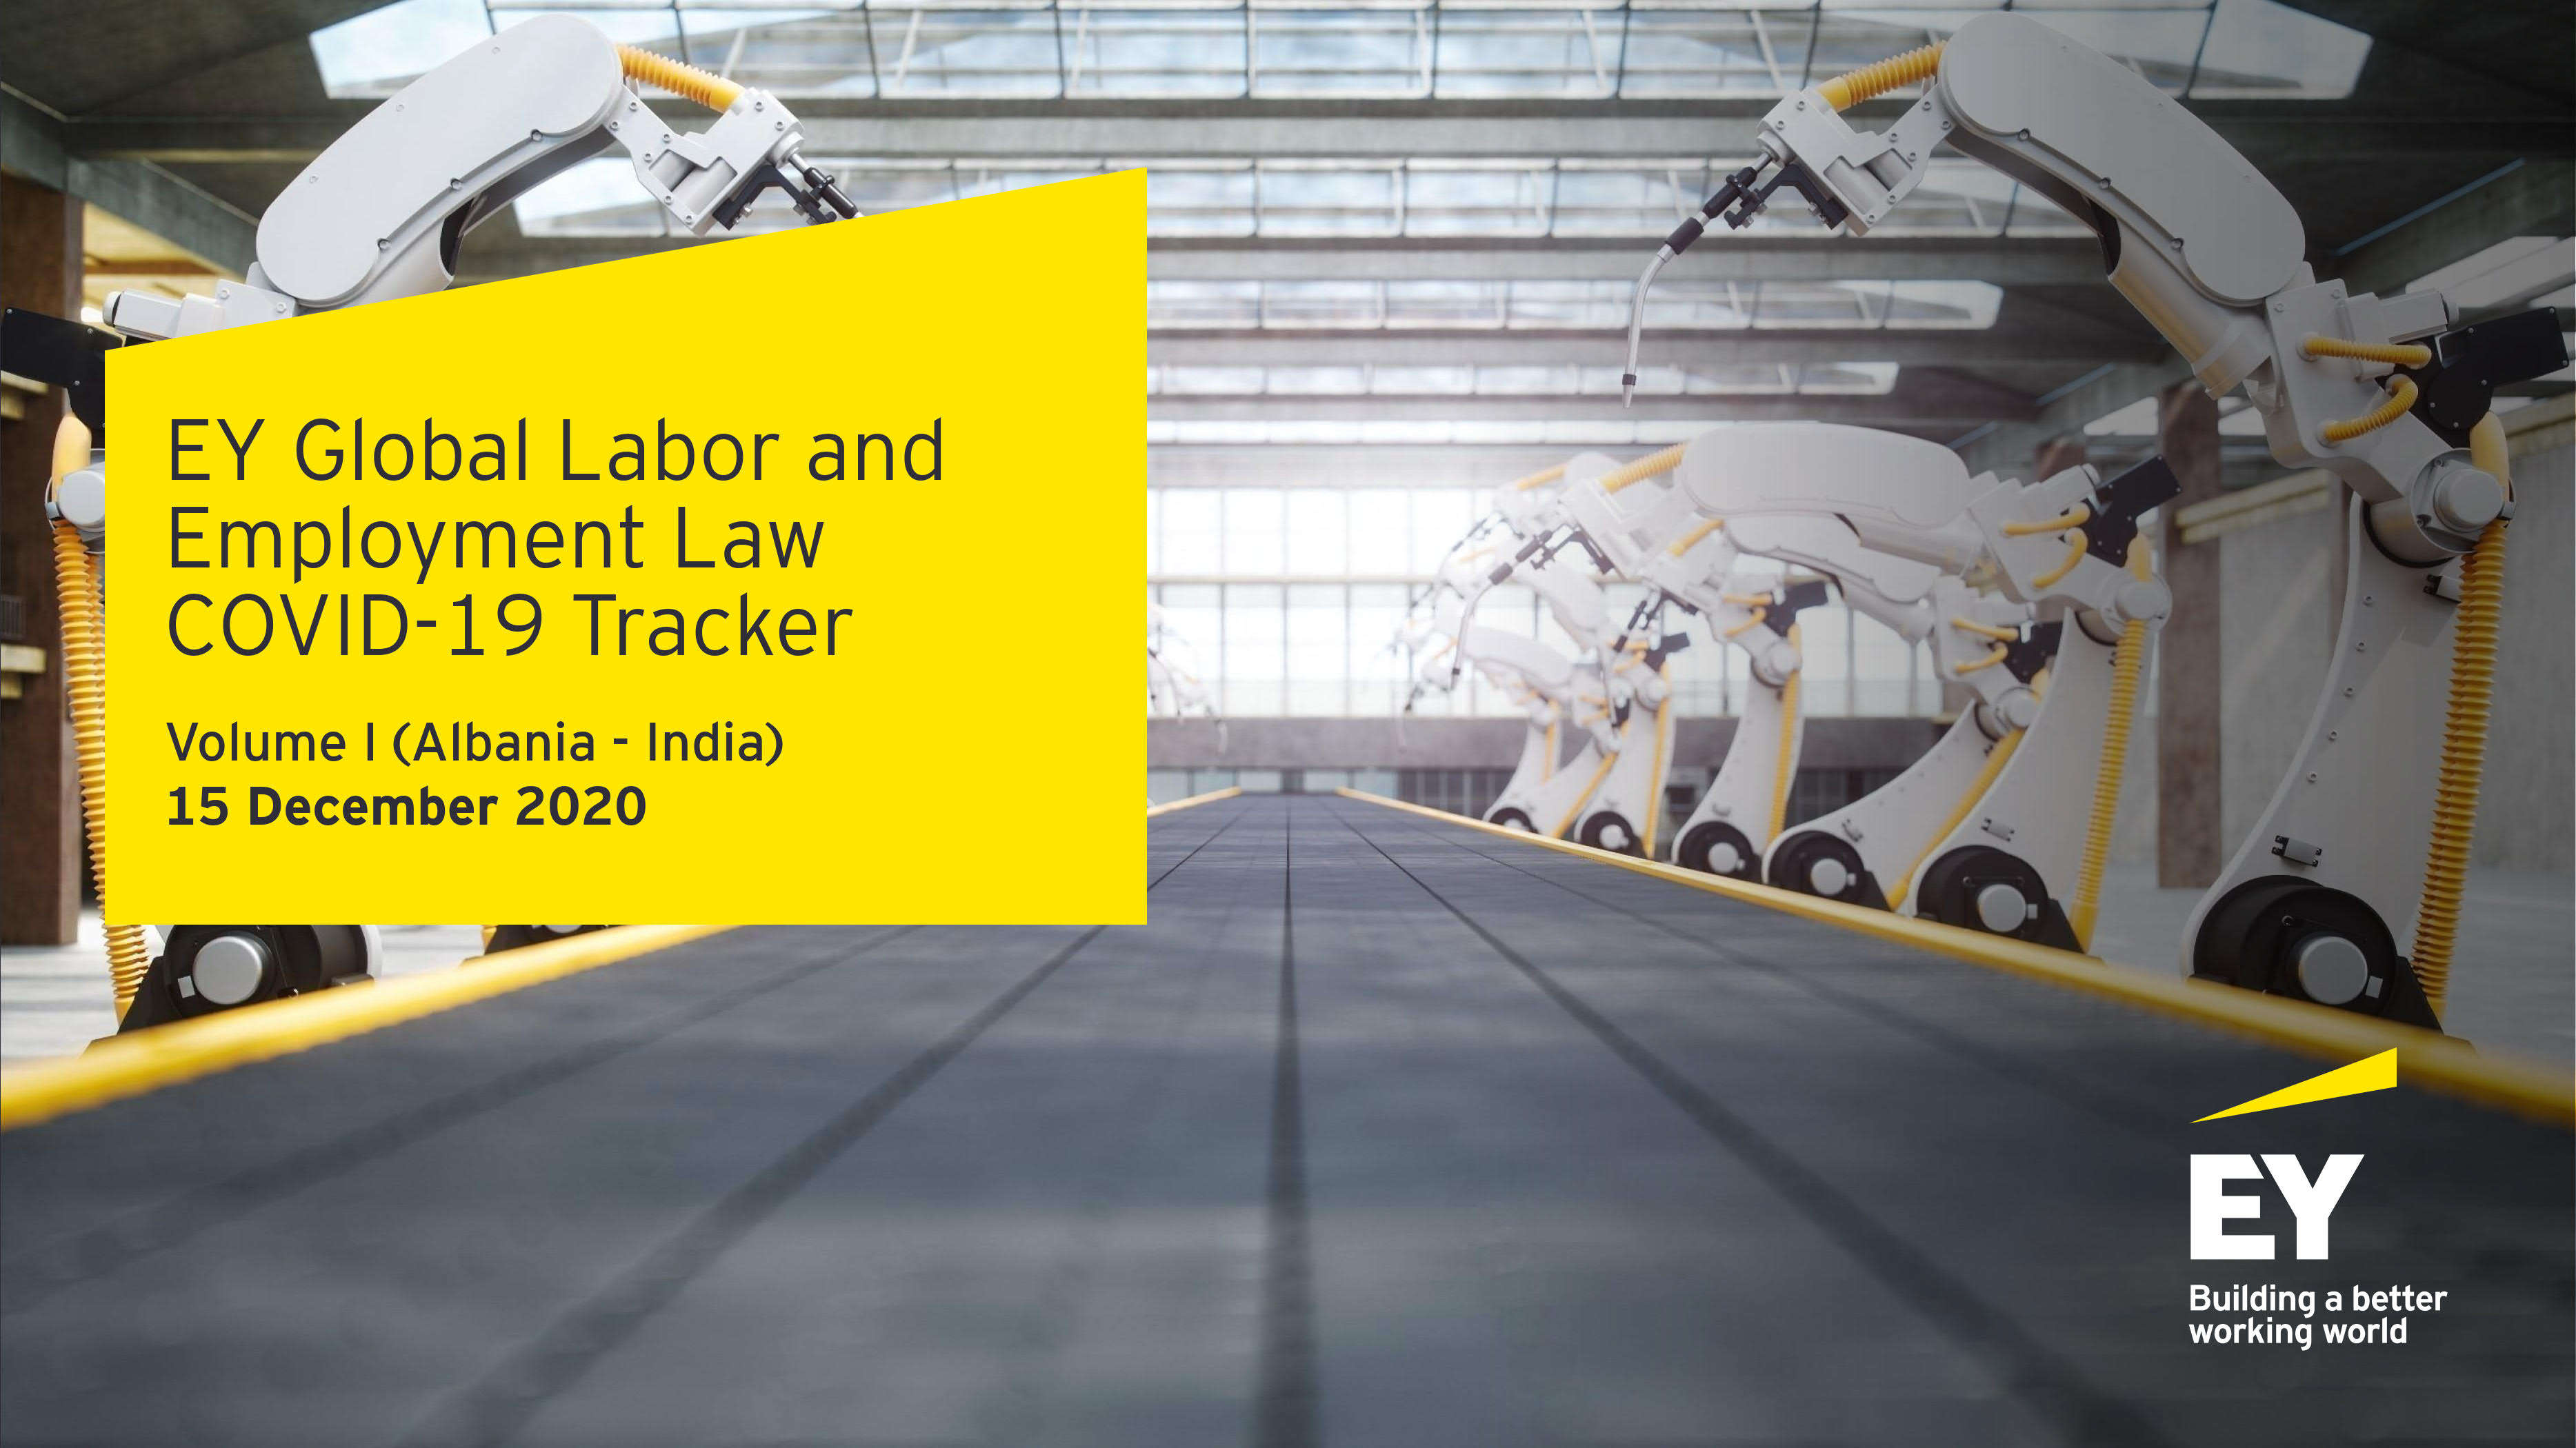 EY Global Labor and Employment Law COVID-19 Tracker Volume I (Albania – India) 15 December 2020